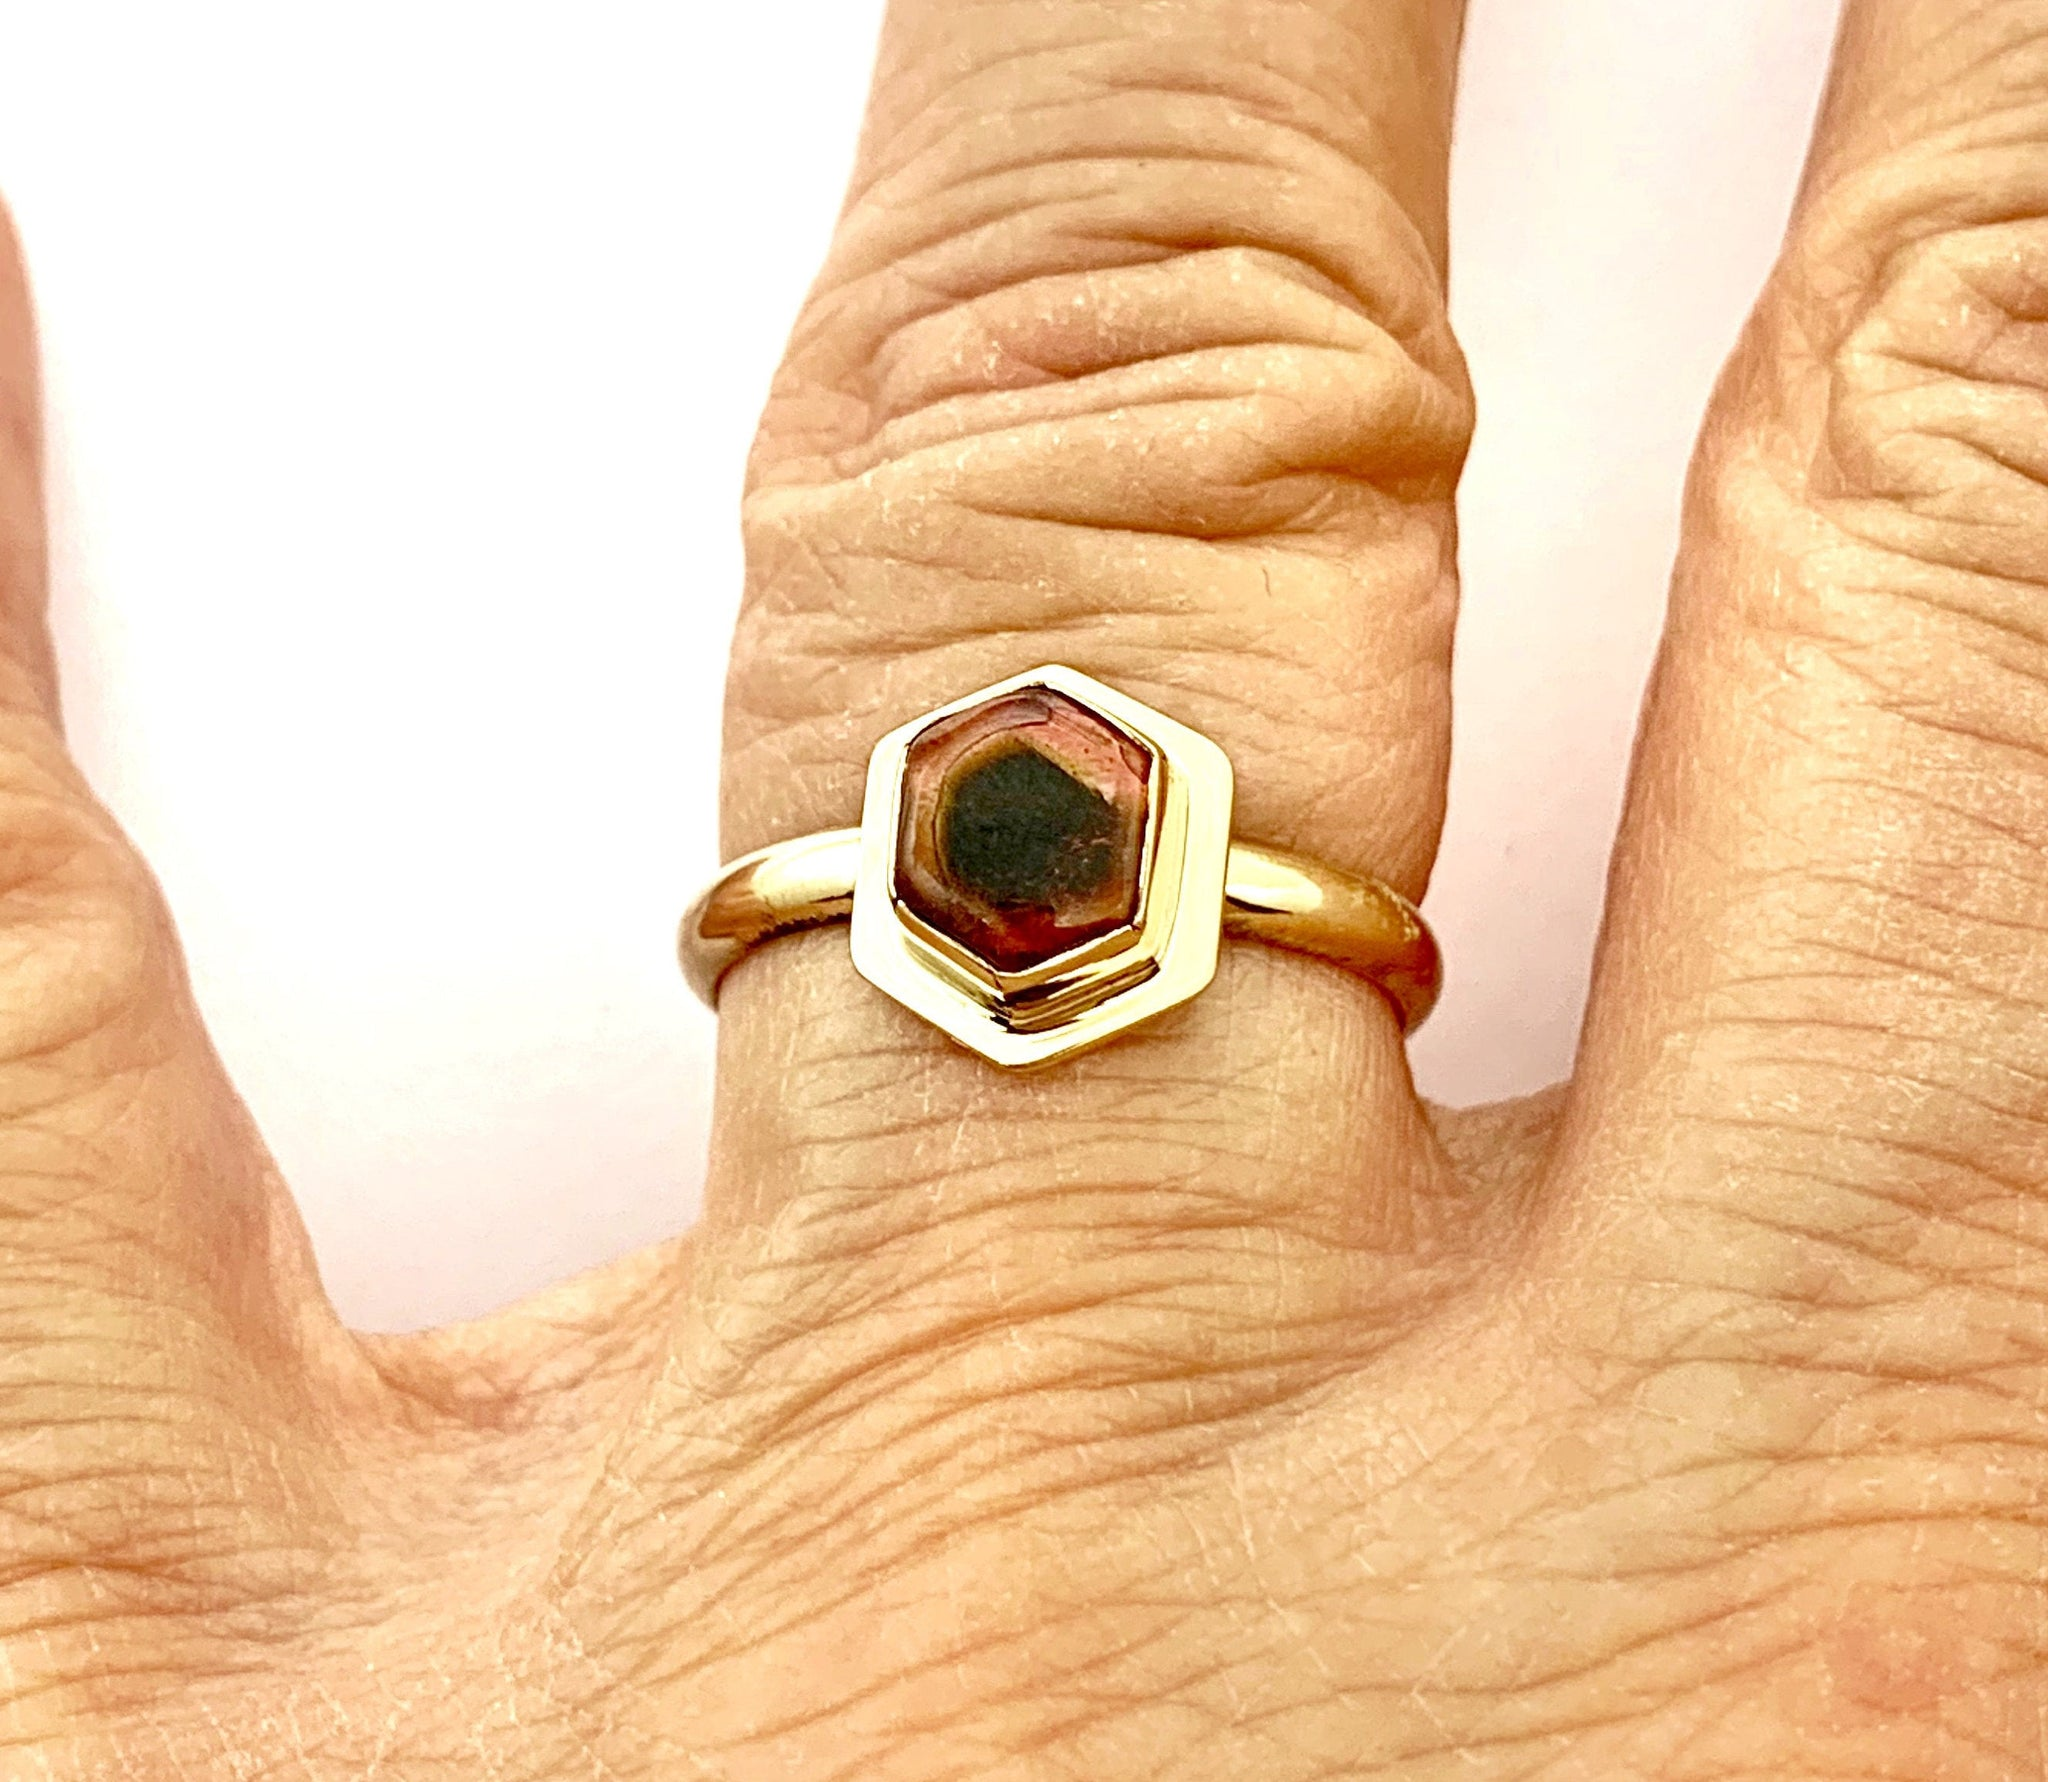 Watermelon Tourmaline Ring in 14k Gold, Gold October Birthstone Ring, Tourmaline Statement Ring